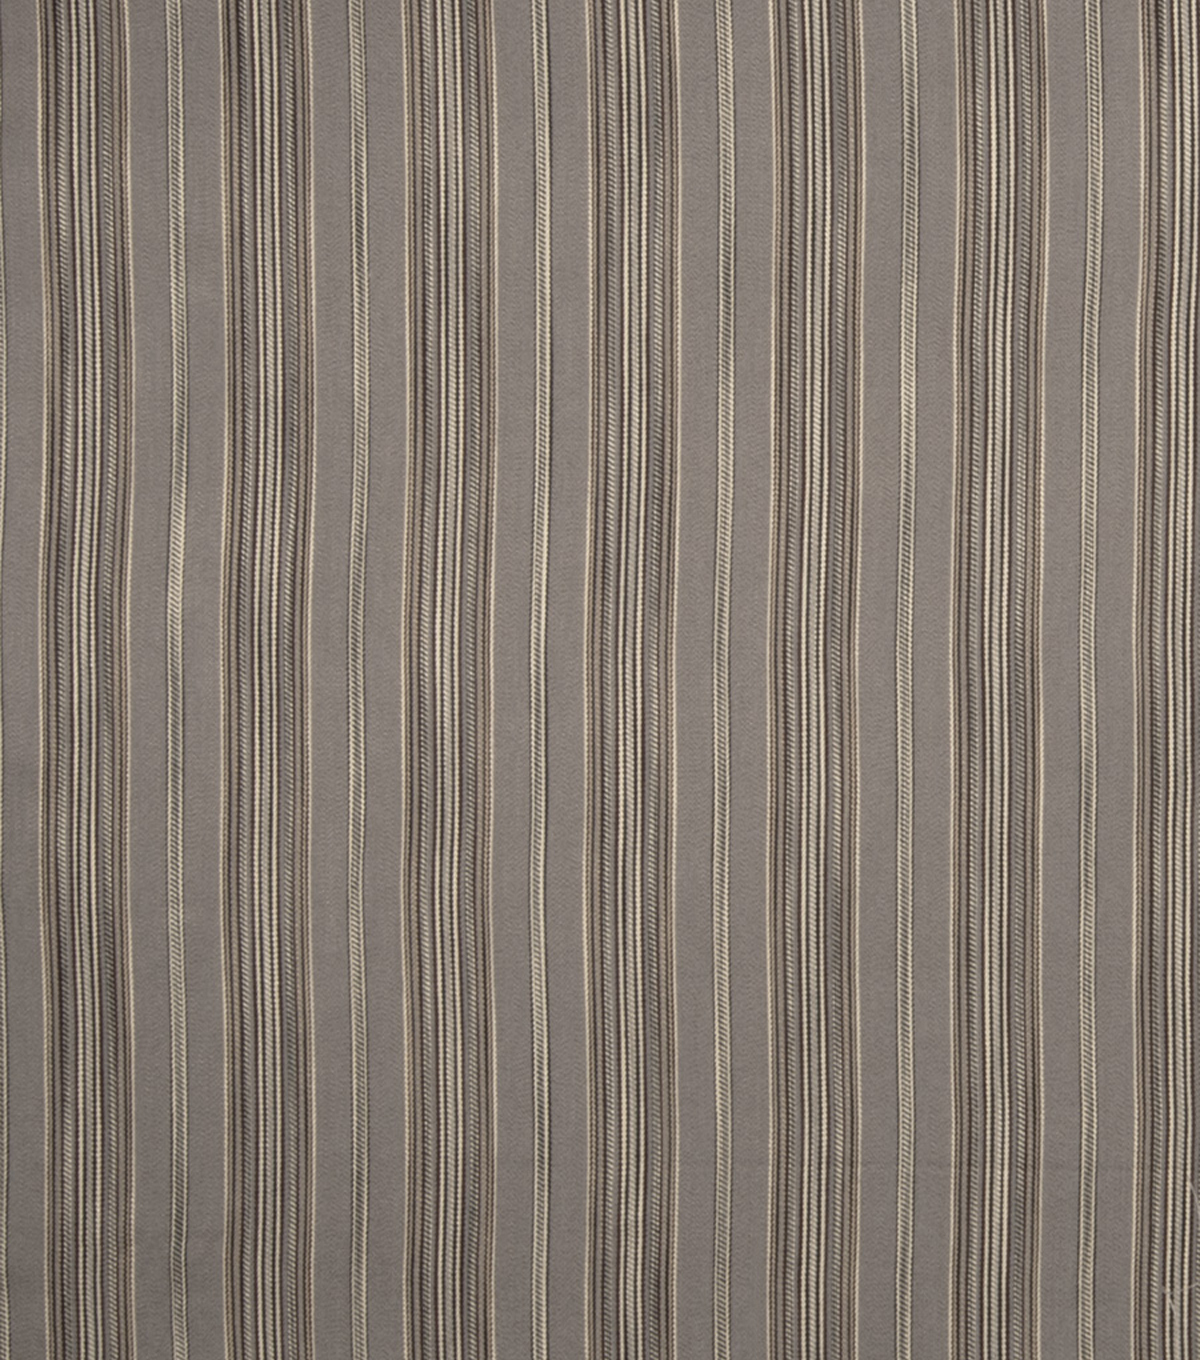 Home Decor 8\u0022x8\u0022 Fabric Swatch-Upholstery Fabric SMC Designs Ethel Smoke